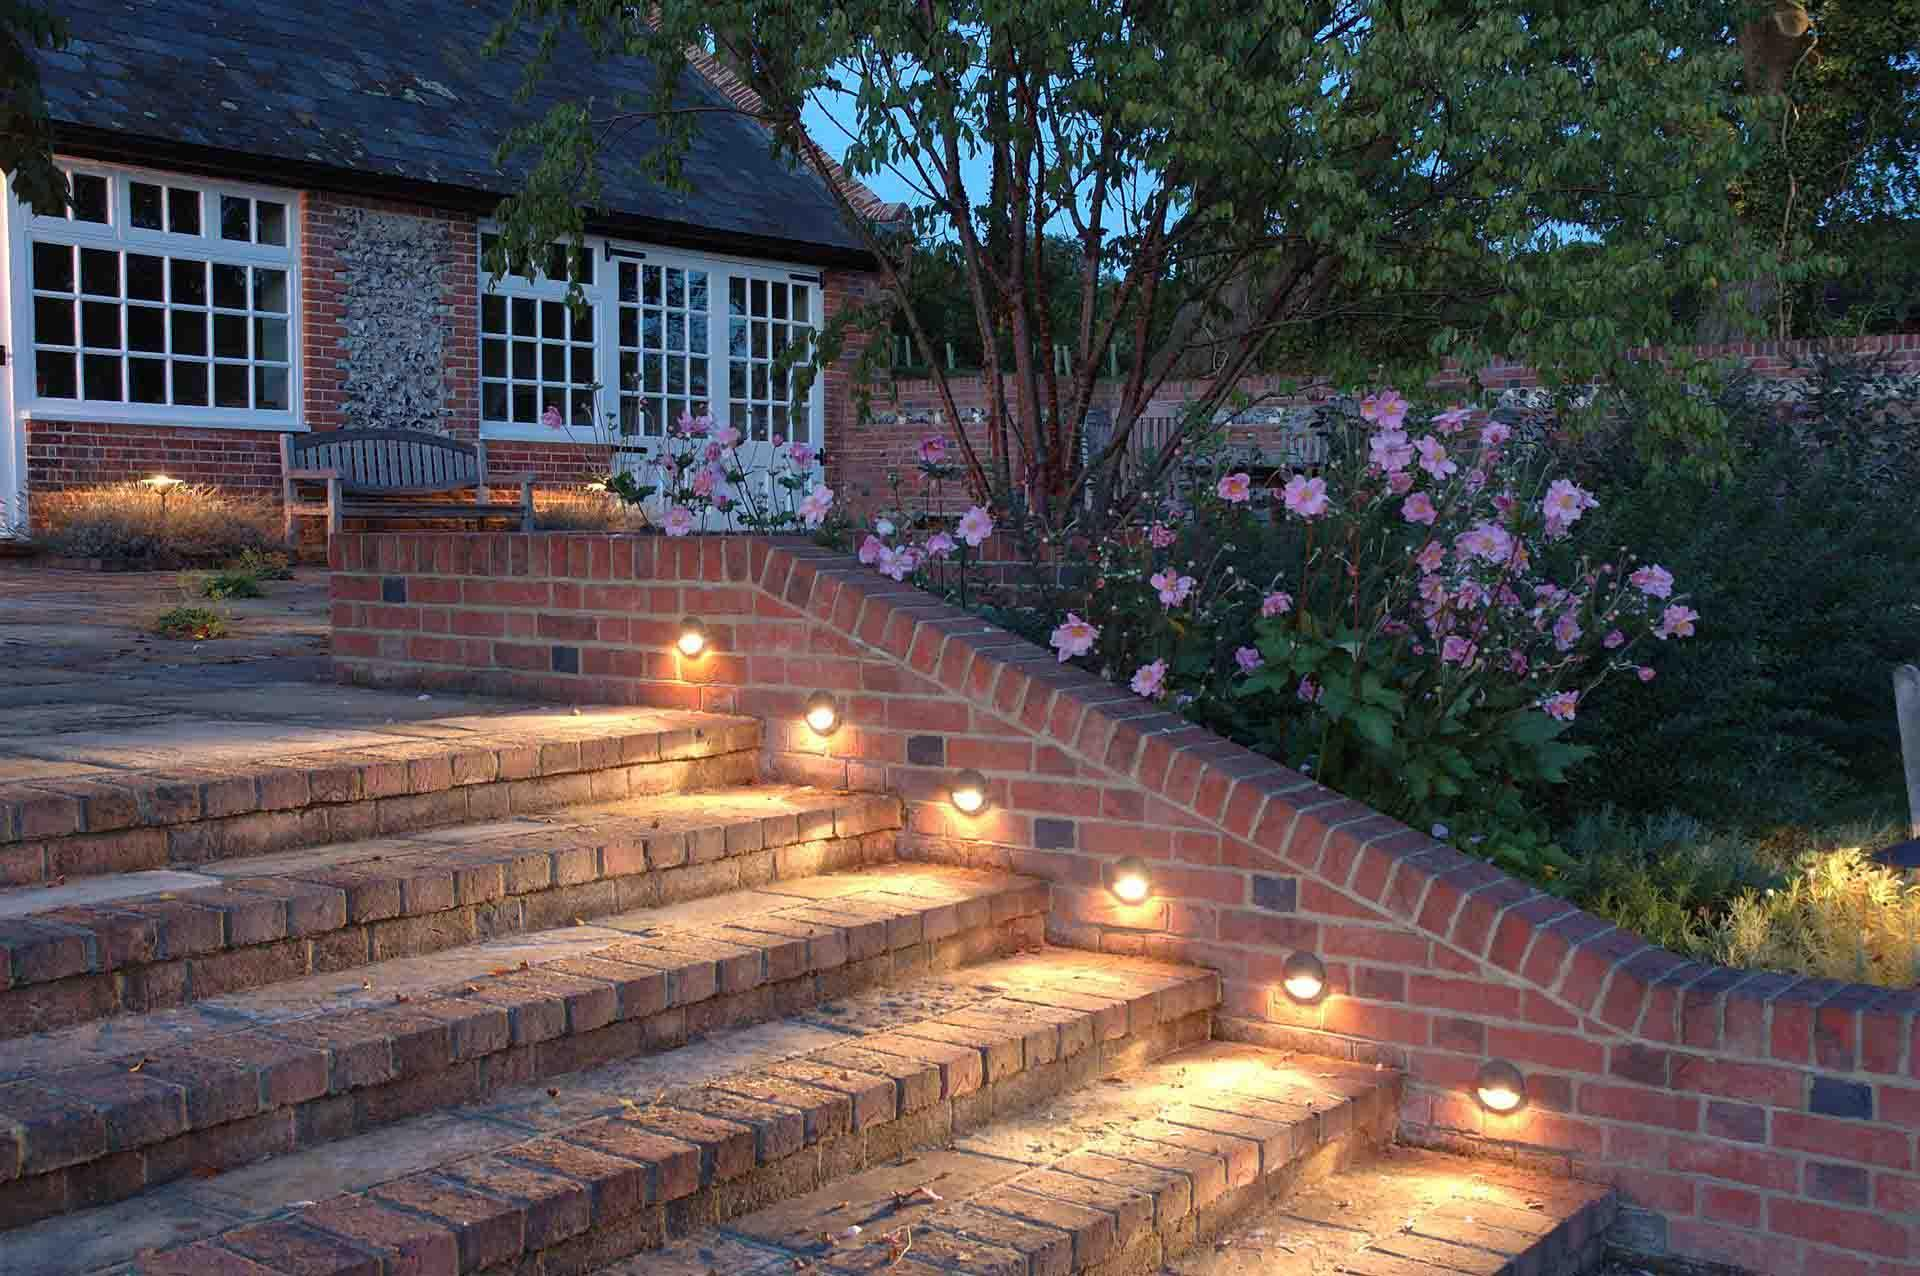 Fixtures & Patio wall lights - 10 ideal ways to light up your home | Warisan ... azcodes.com